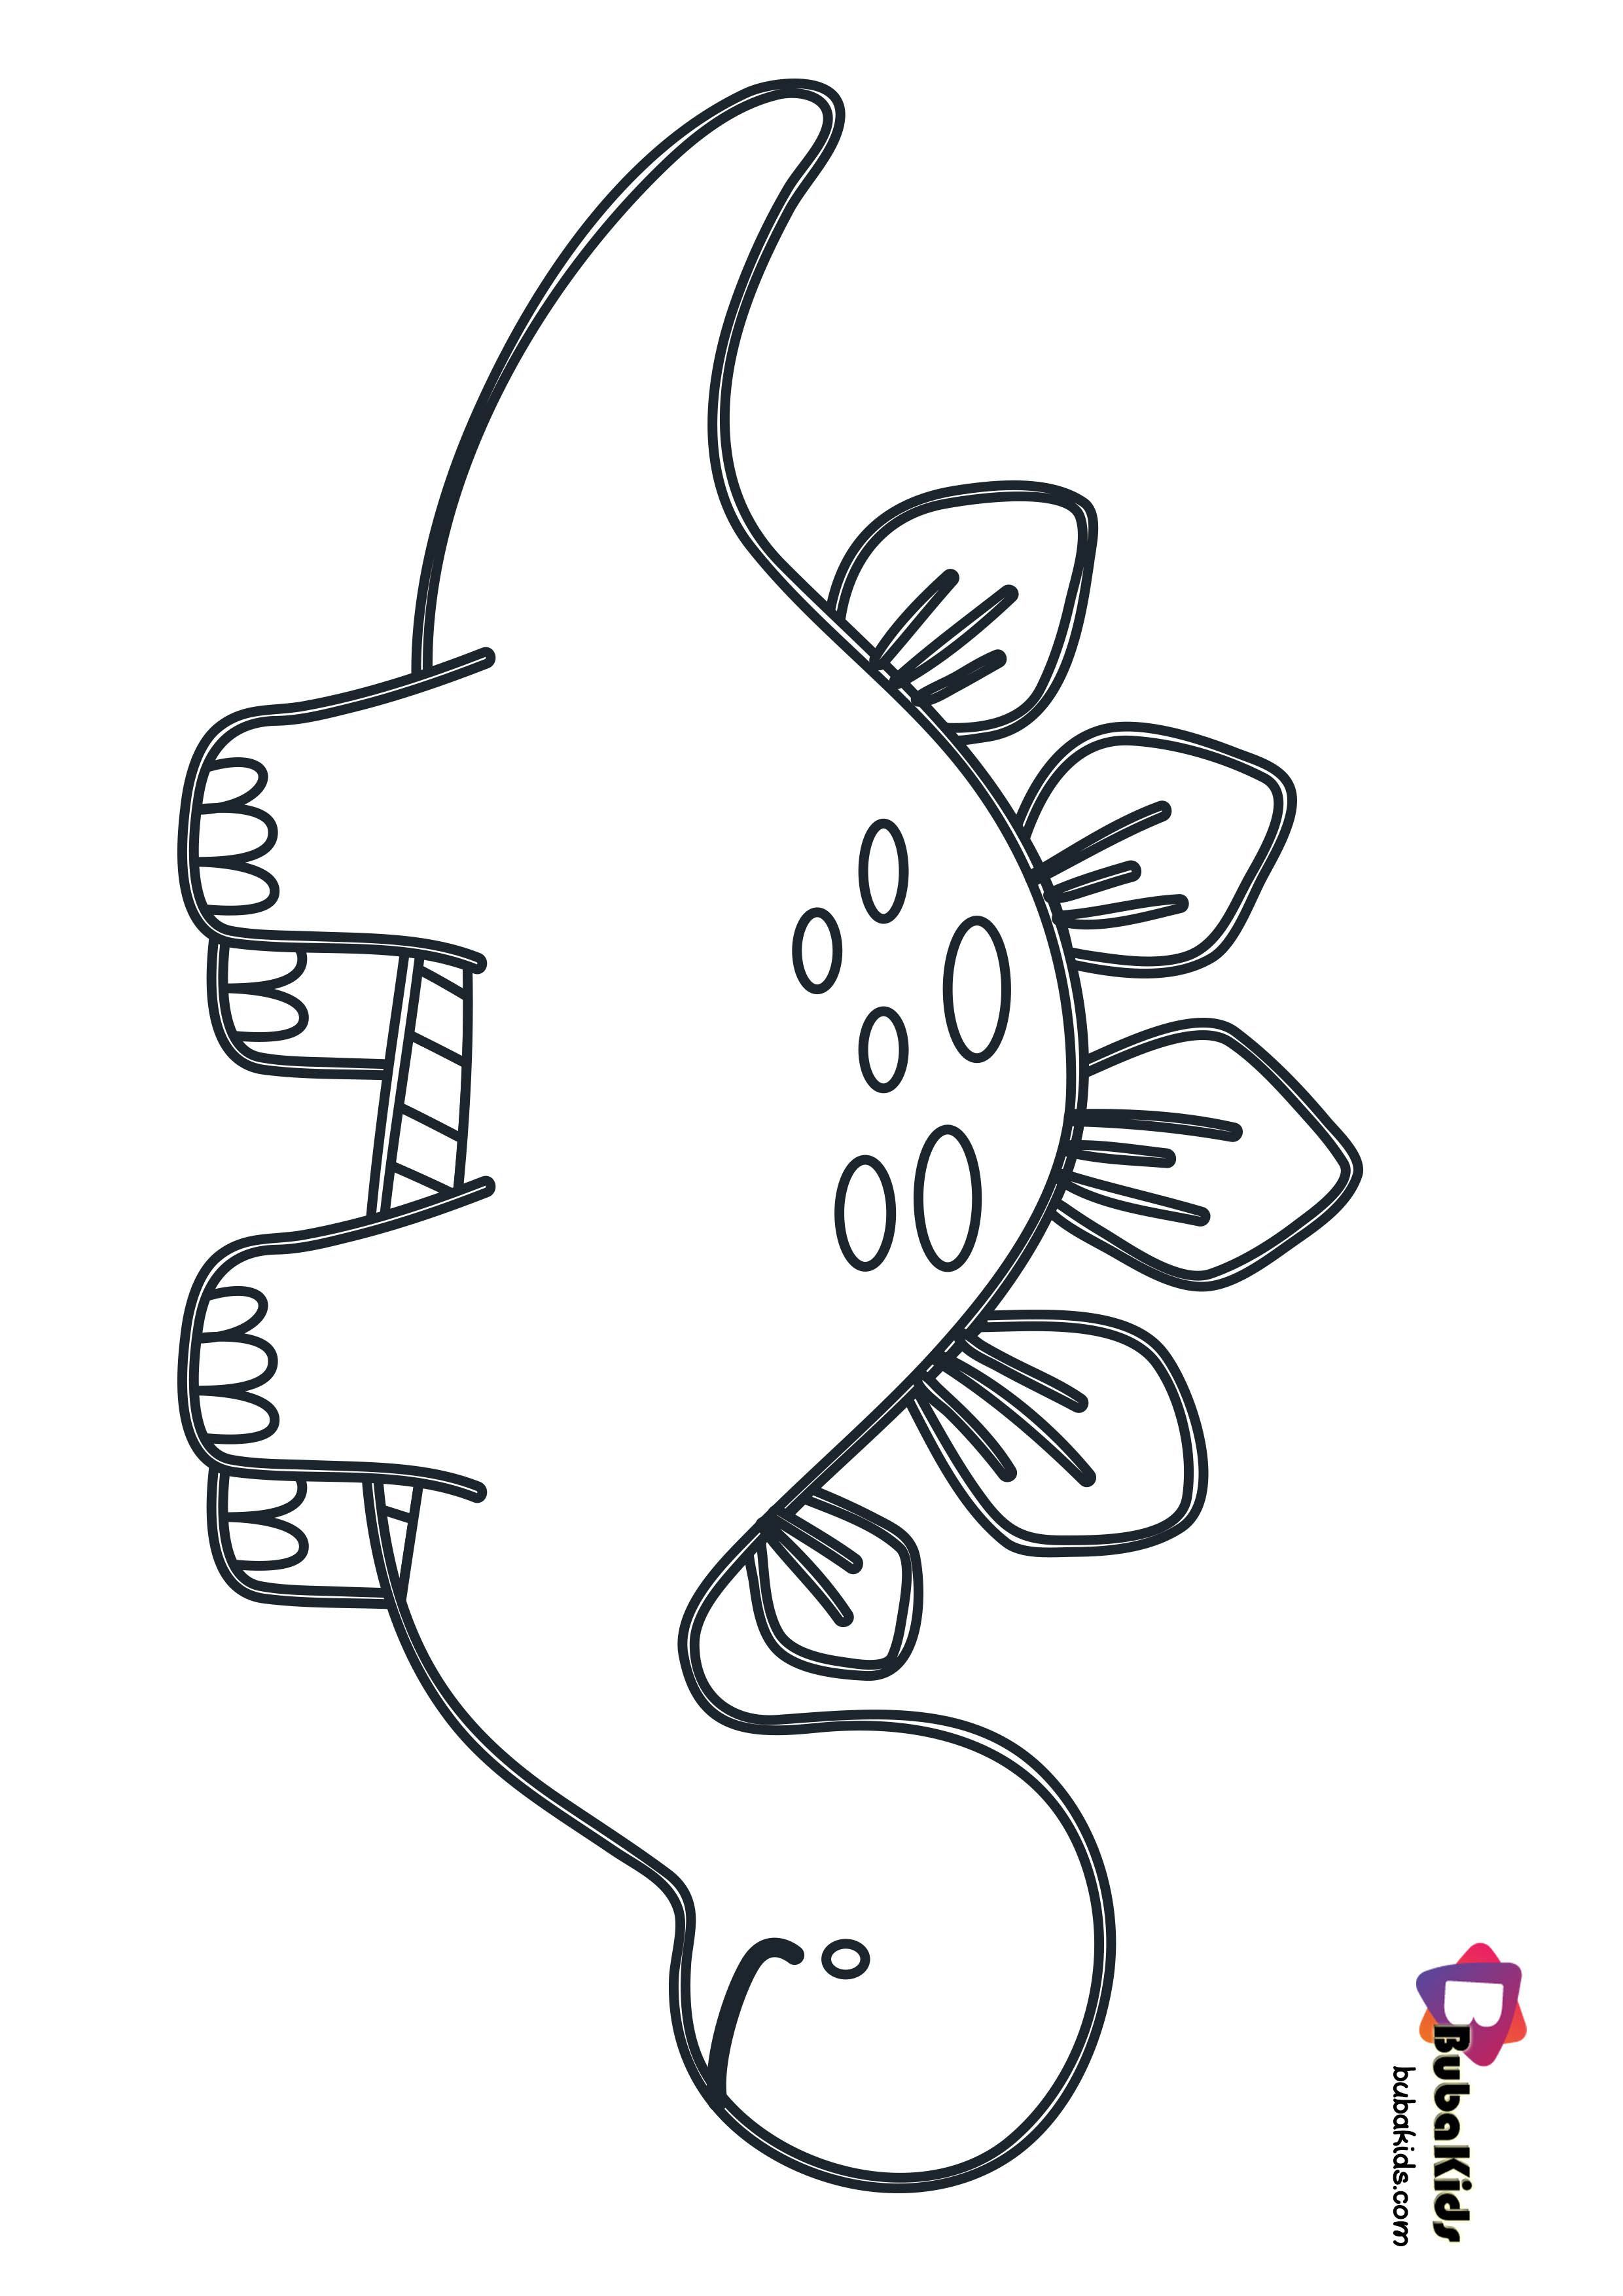 400 Best Coloring Pages Cute Baby Dinosaurs Coloring Page For Kids Cute Baby Dinosaurs Colorin In 2020 Dinosaur Coloring Pages Dinosaur Coloring Cute Coloring Pages